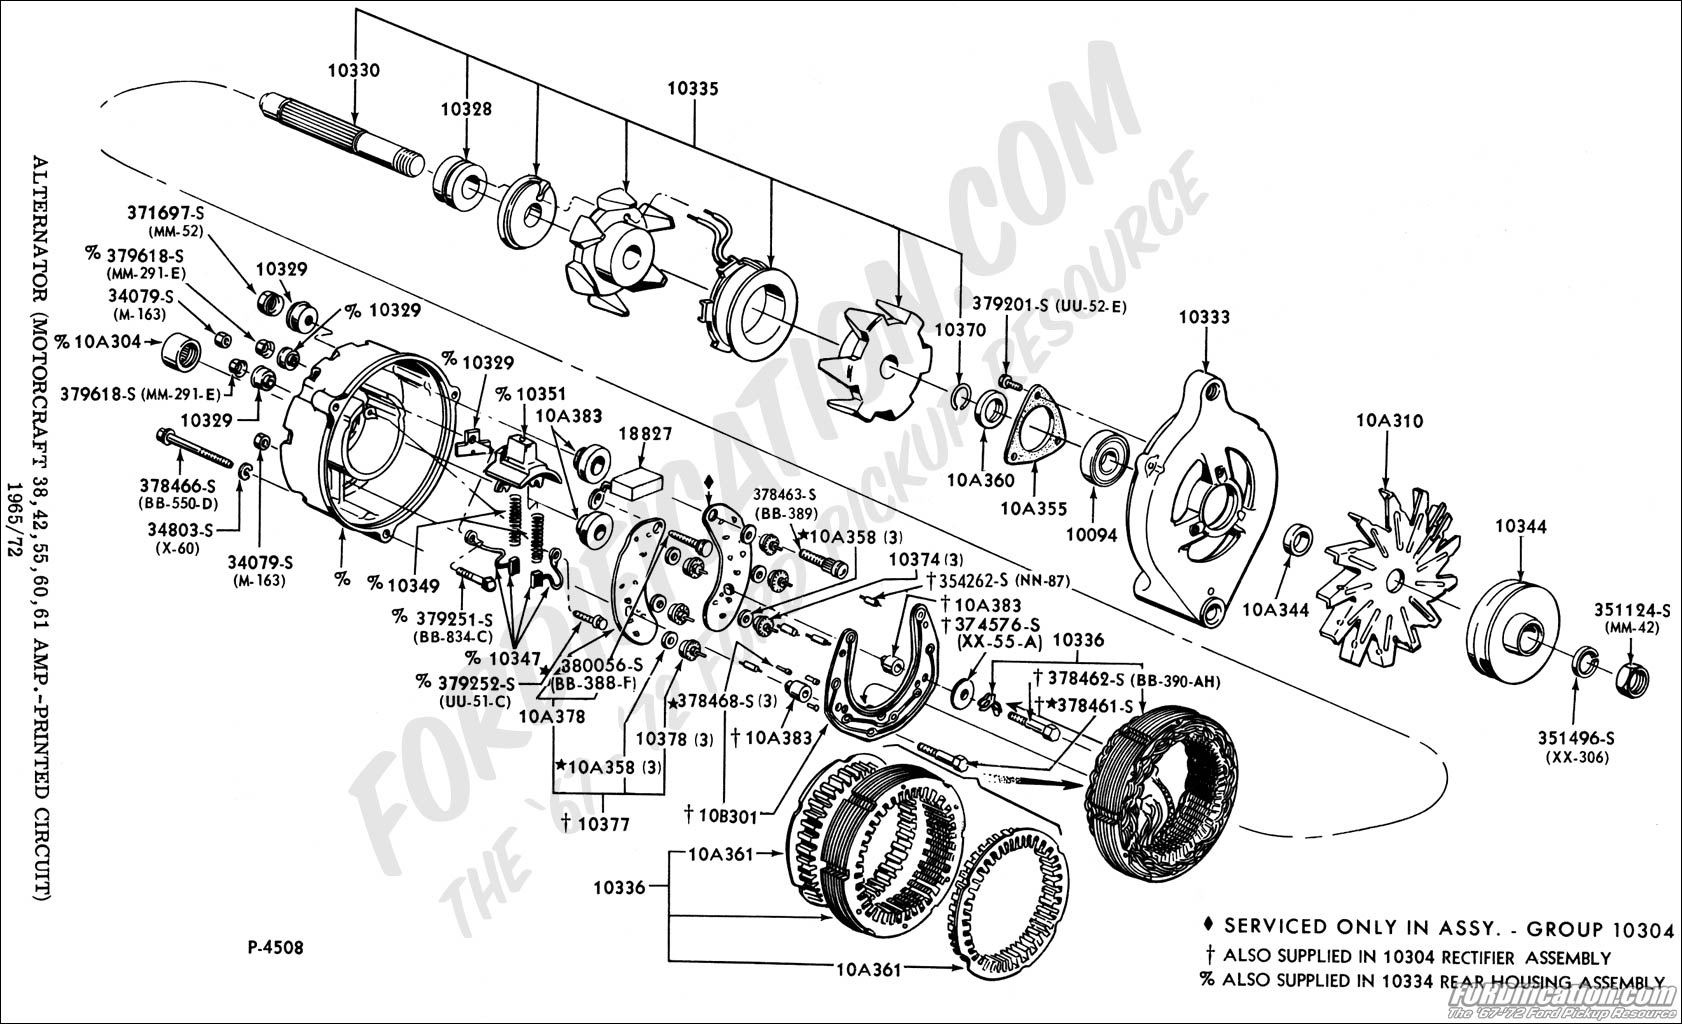 85 Ford Alternator Wiring Diagram. Ford. Wiring Diagrams Instructions